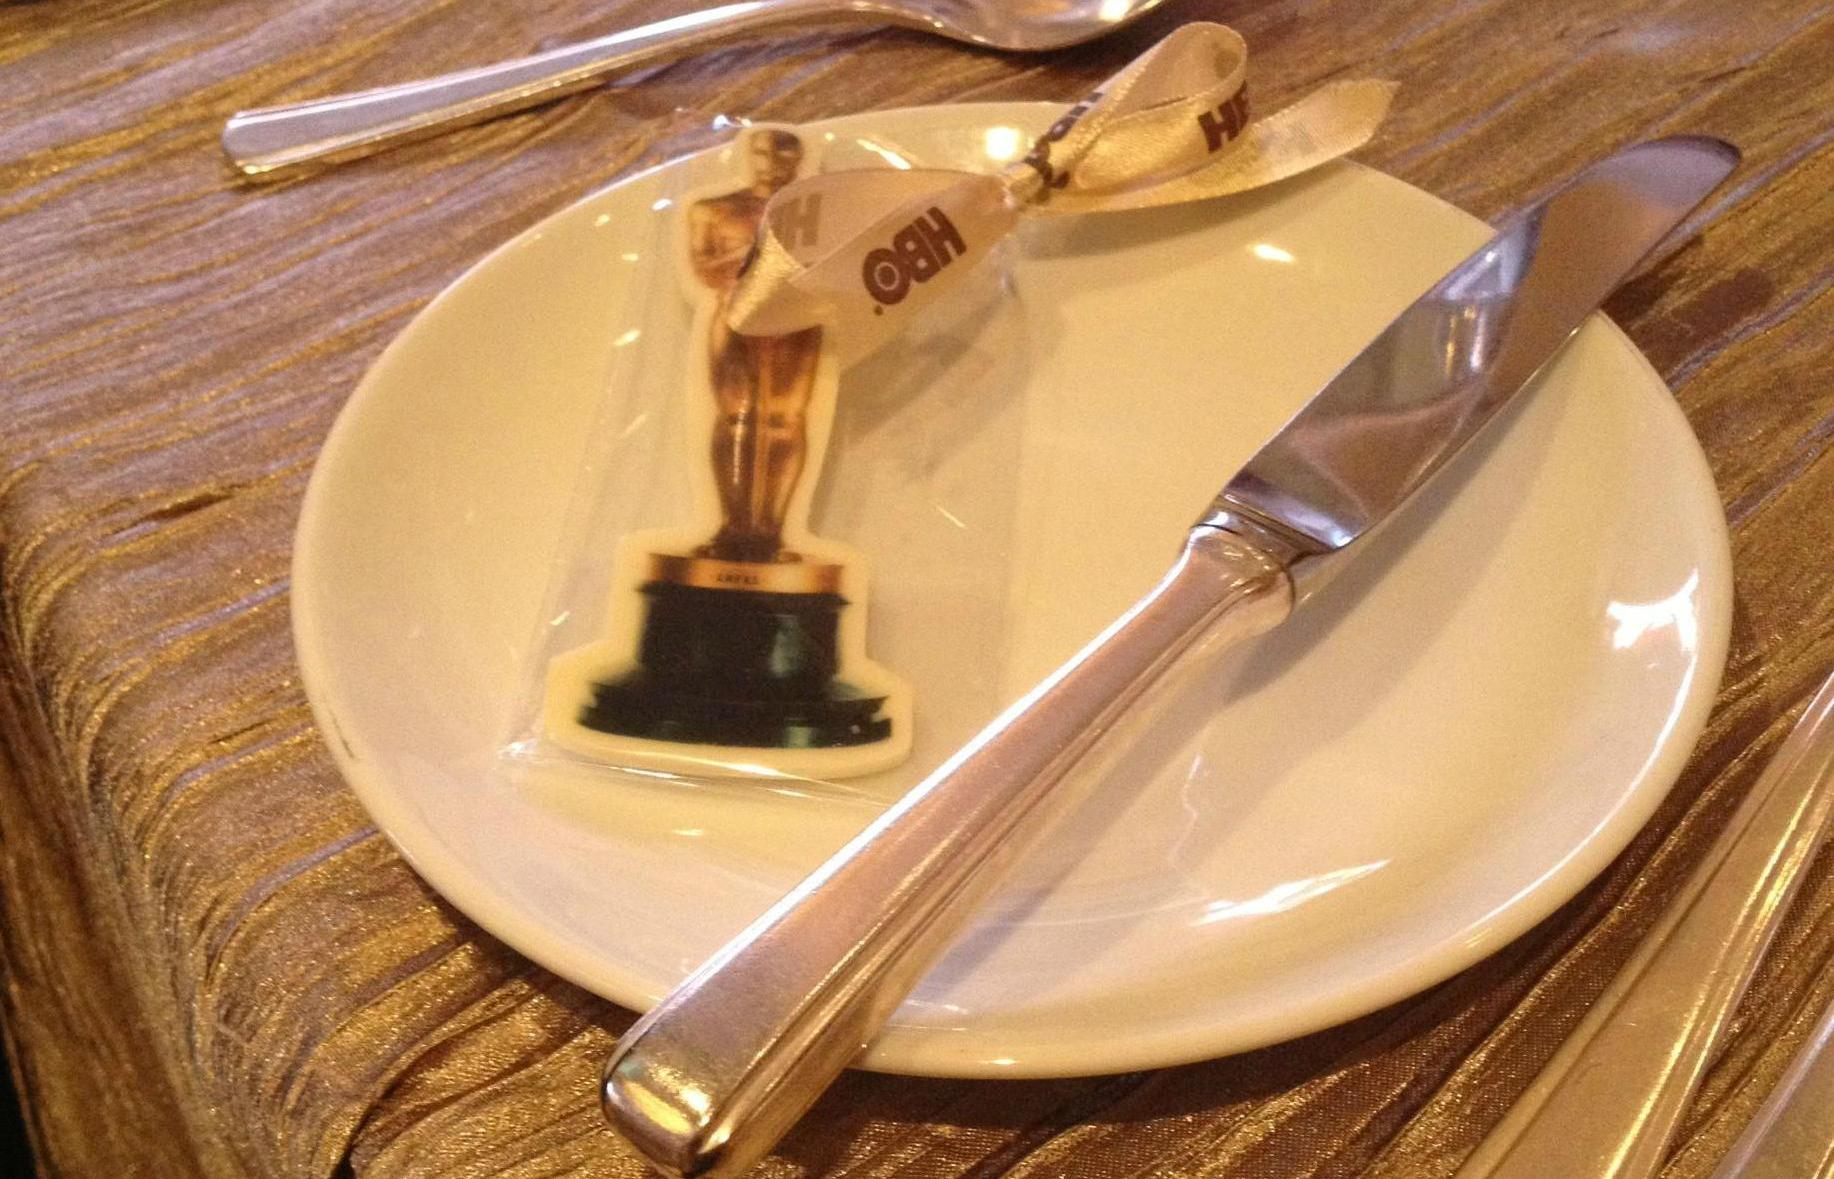 Who needs the real Oscar when you can have an edible chocolate one!